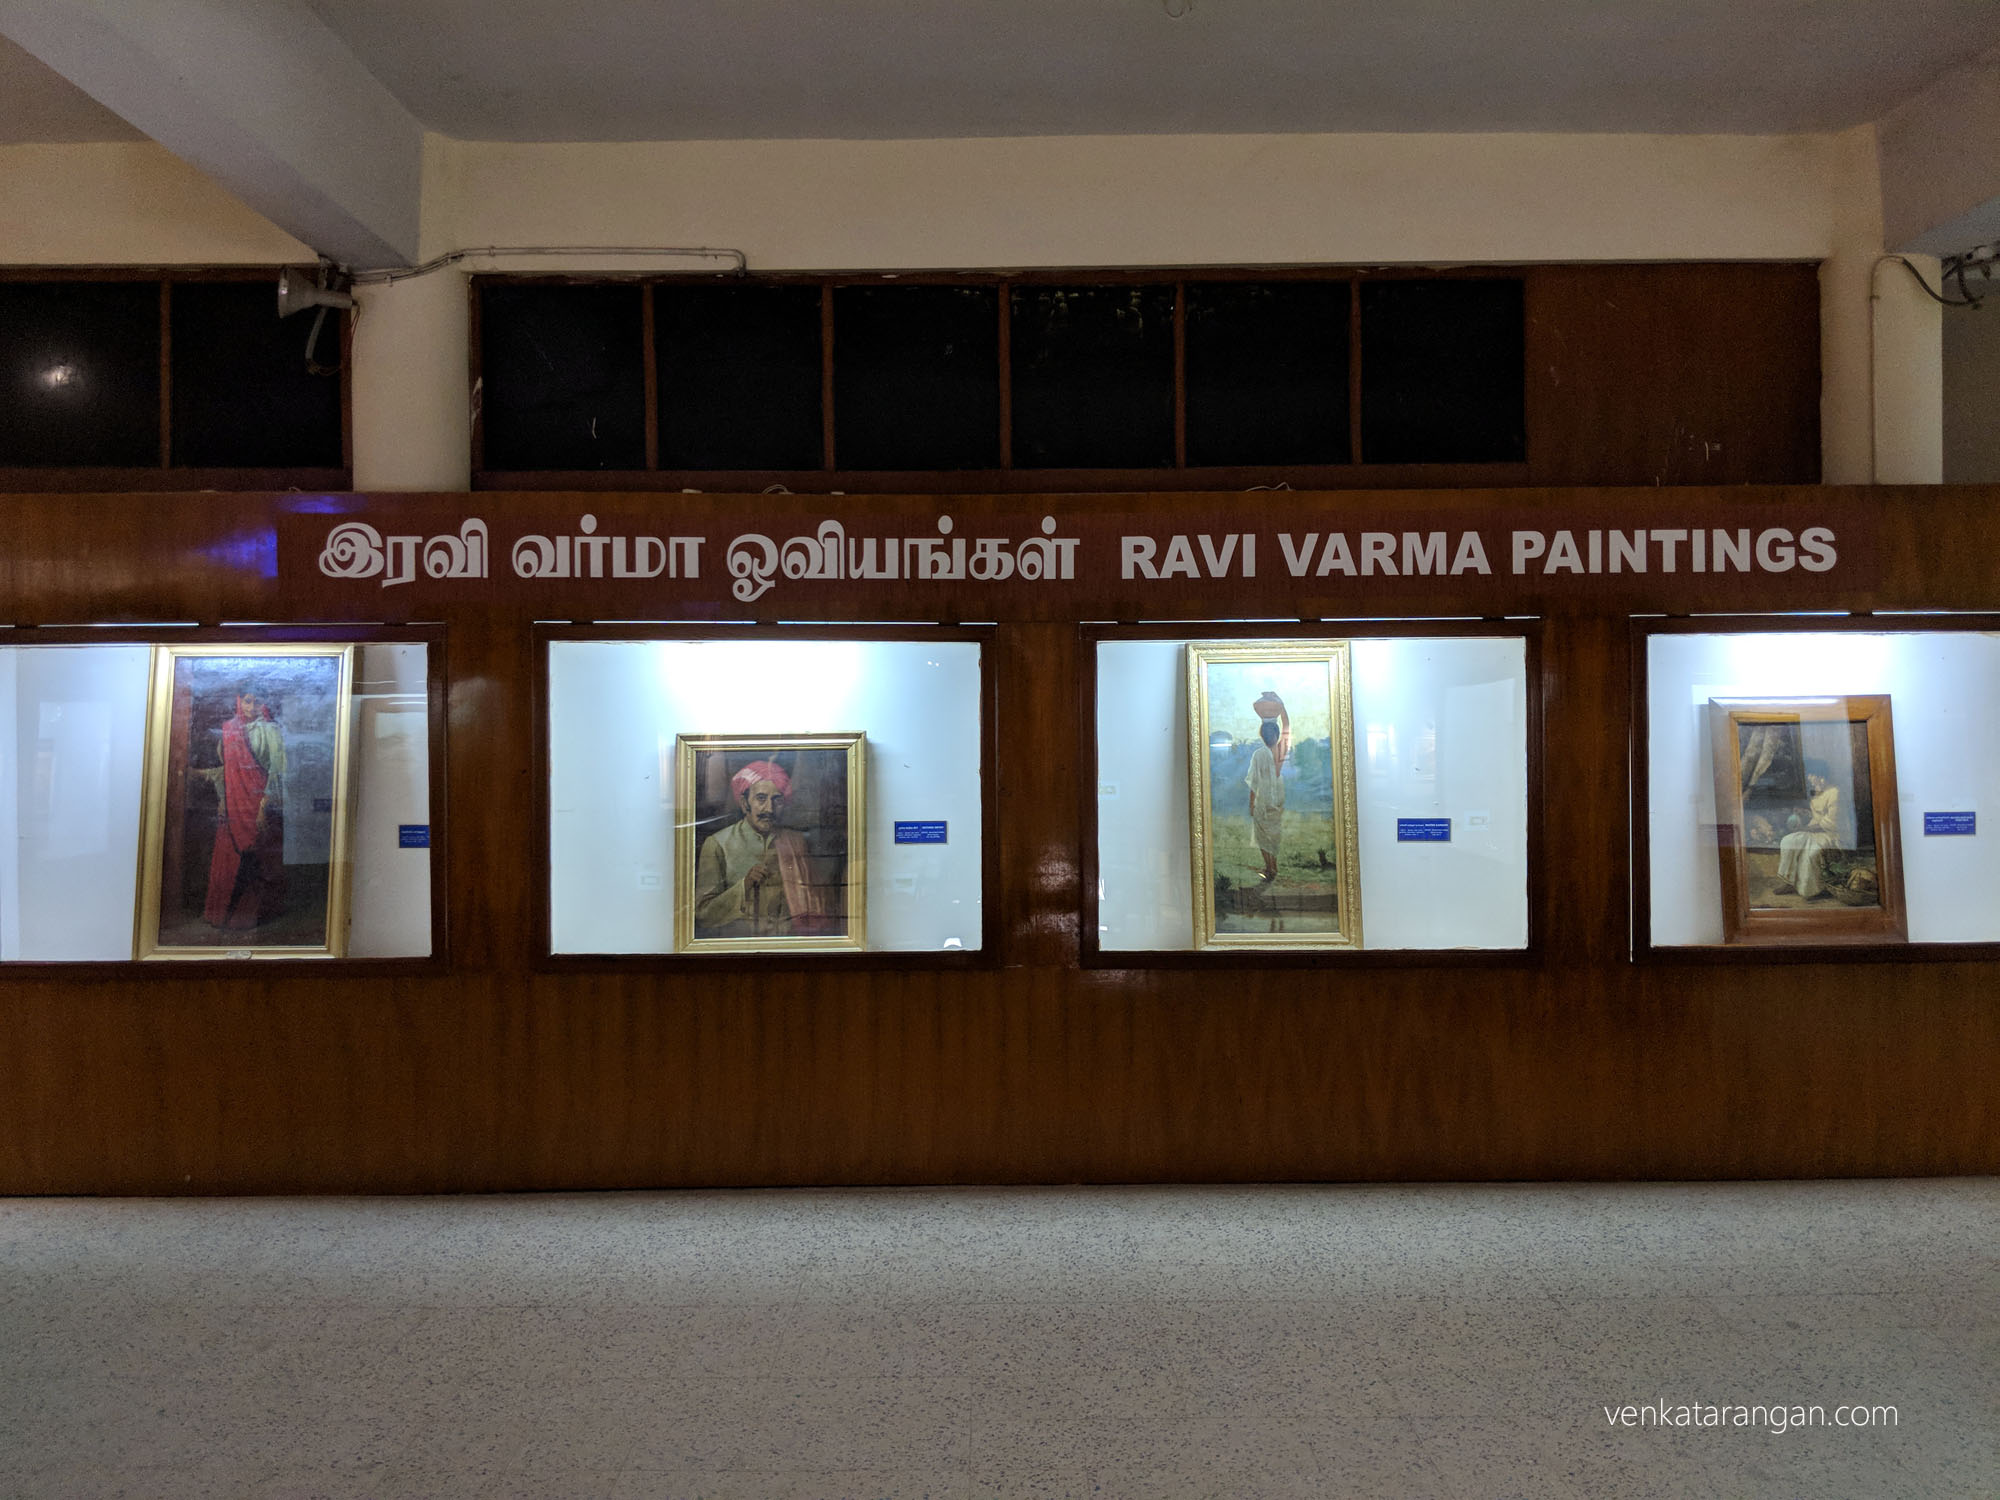 Not be missed: Raja Ravi Varma Paintings, இராஜா ரவி வர்மா ஓவியங்கள். His depictions of Hindu deities are found, often as objects of worship.